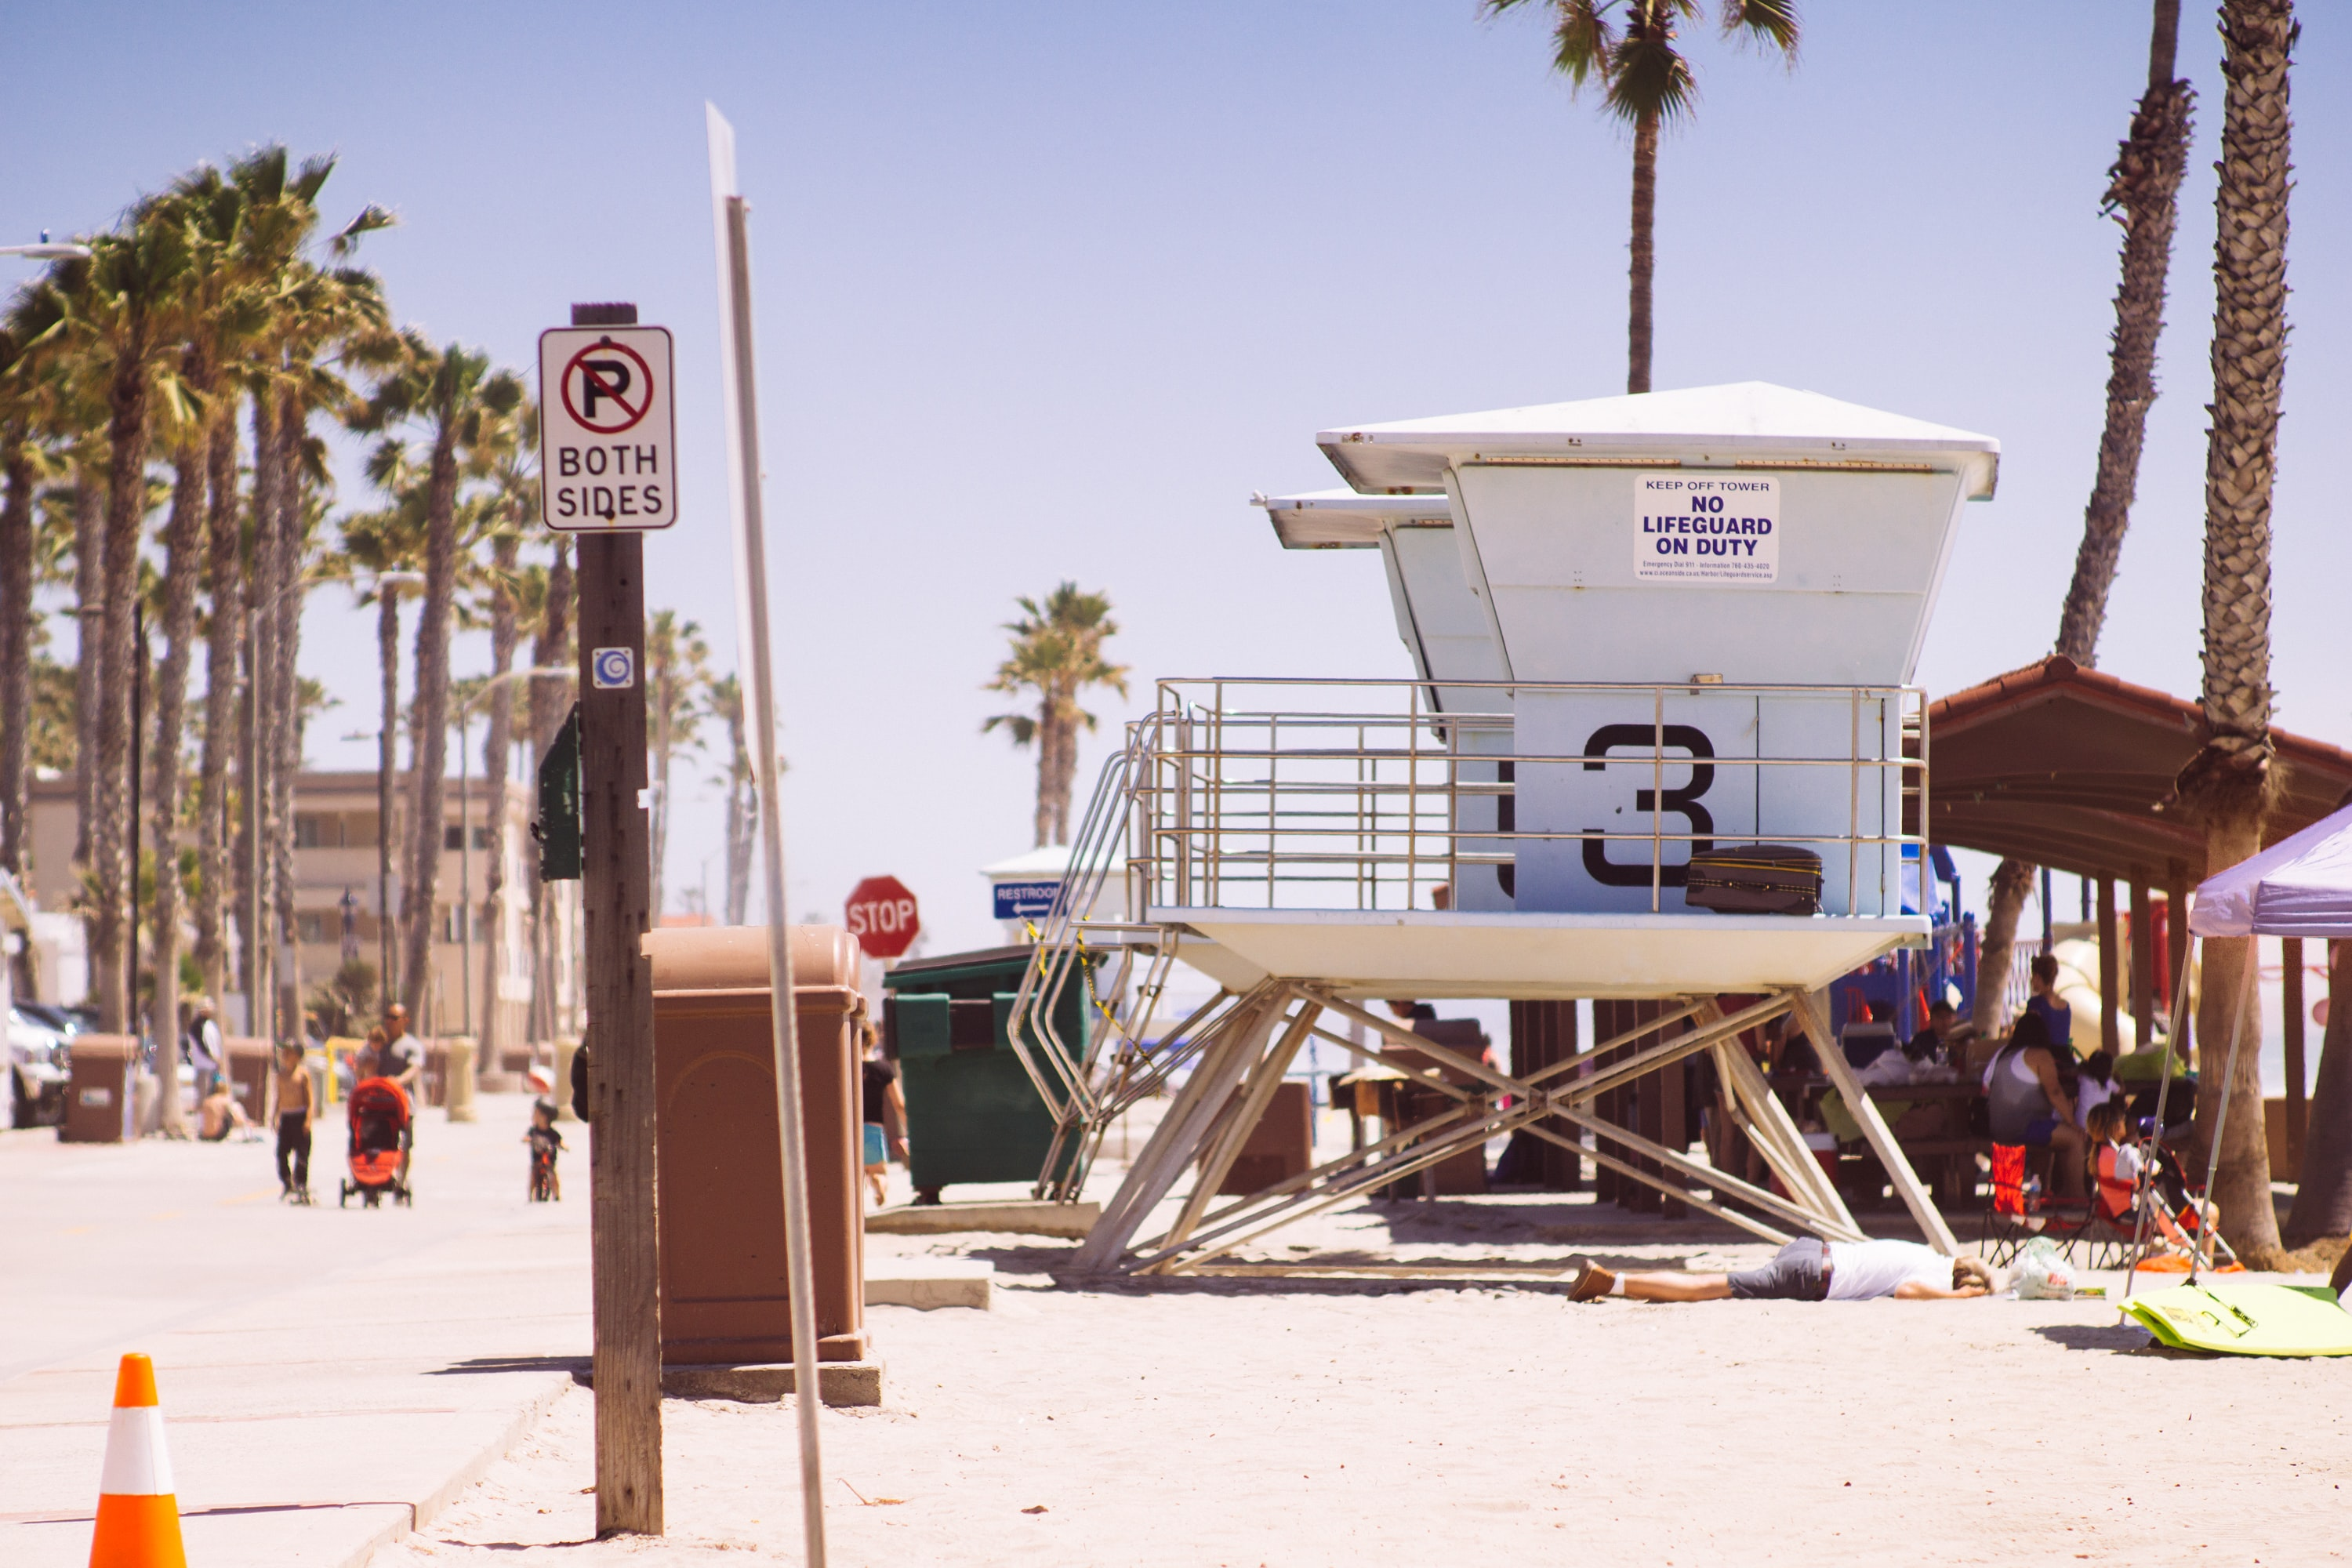 Beach premises featuring lifeguard hut, palm trees, a resting man and pedestrians  at Oceanside